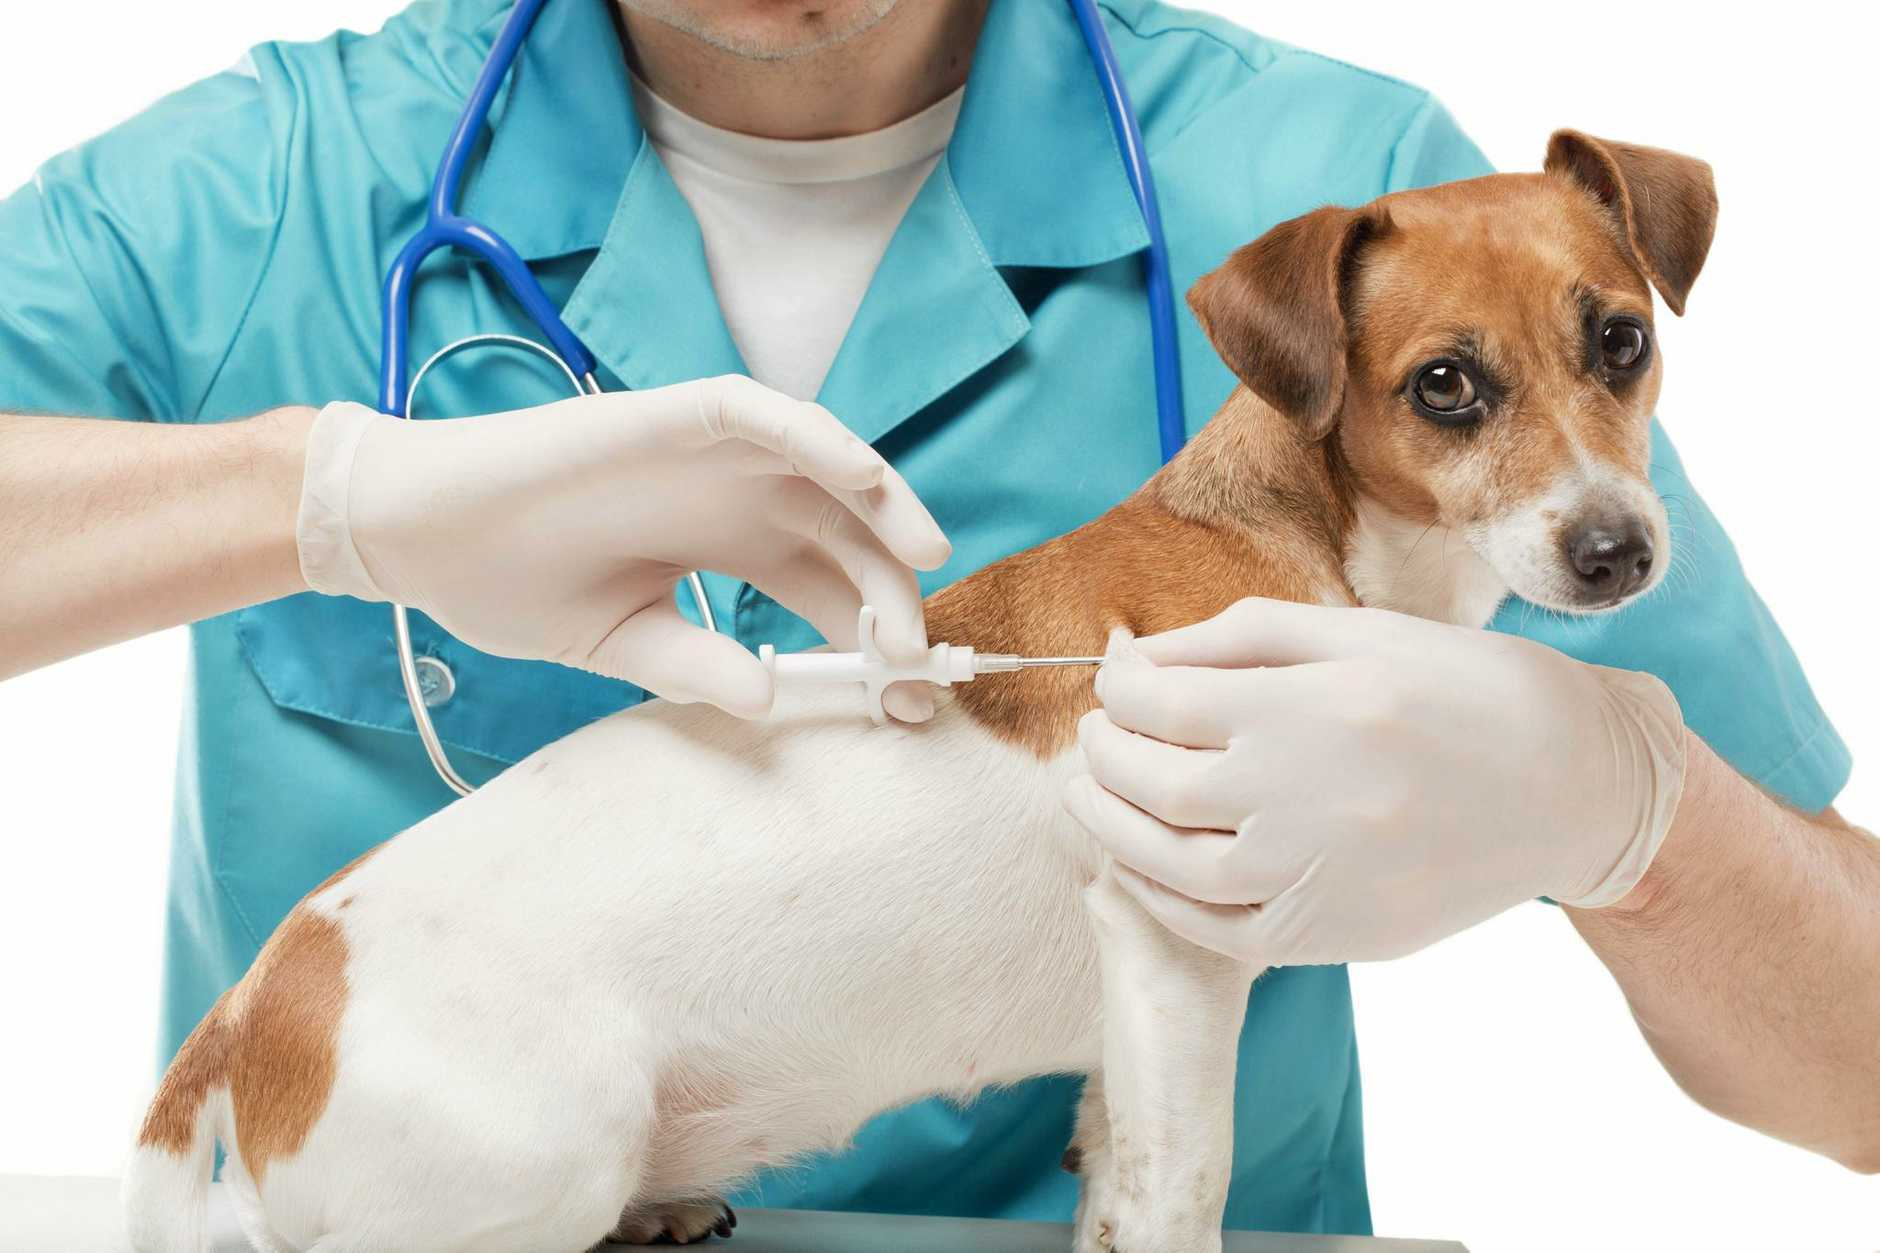 NEW VET: Families will be looking for a new vet after the sudden closure of a popular Coast surgery.